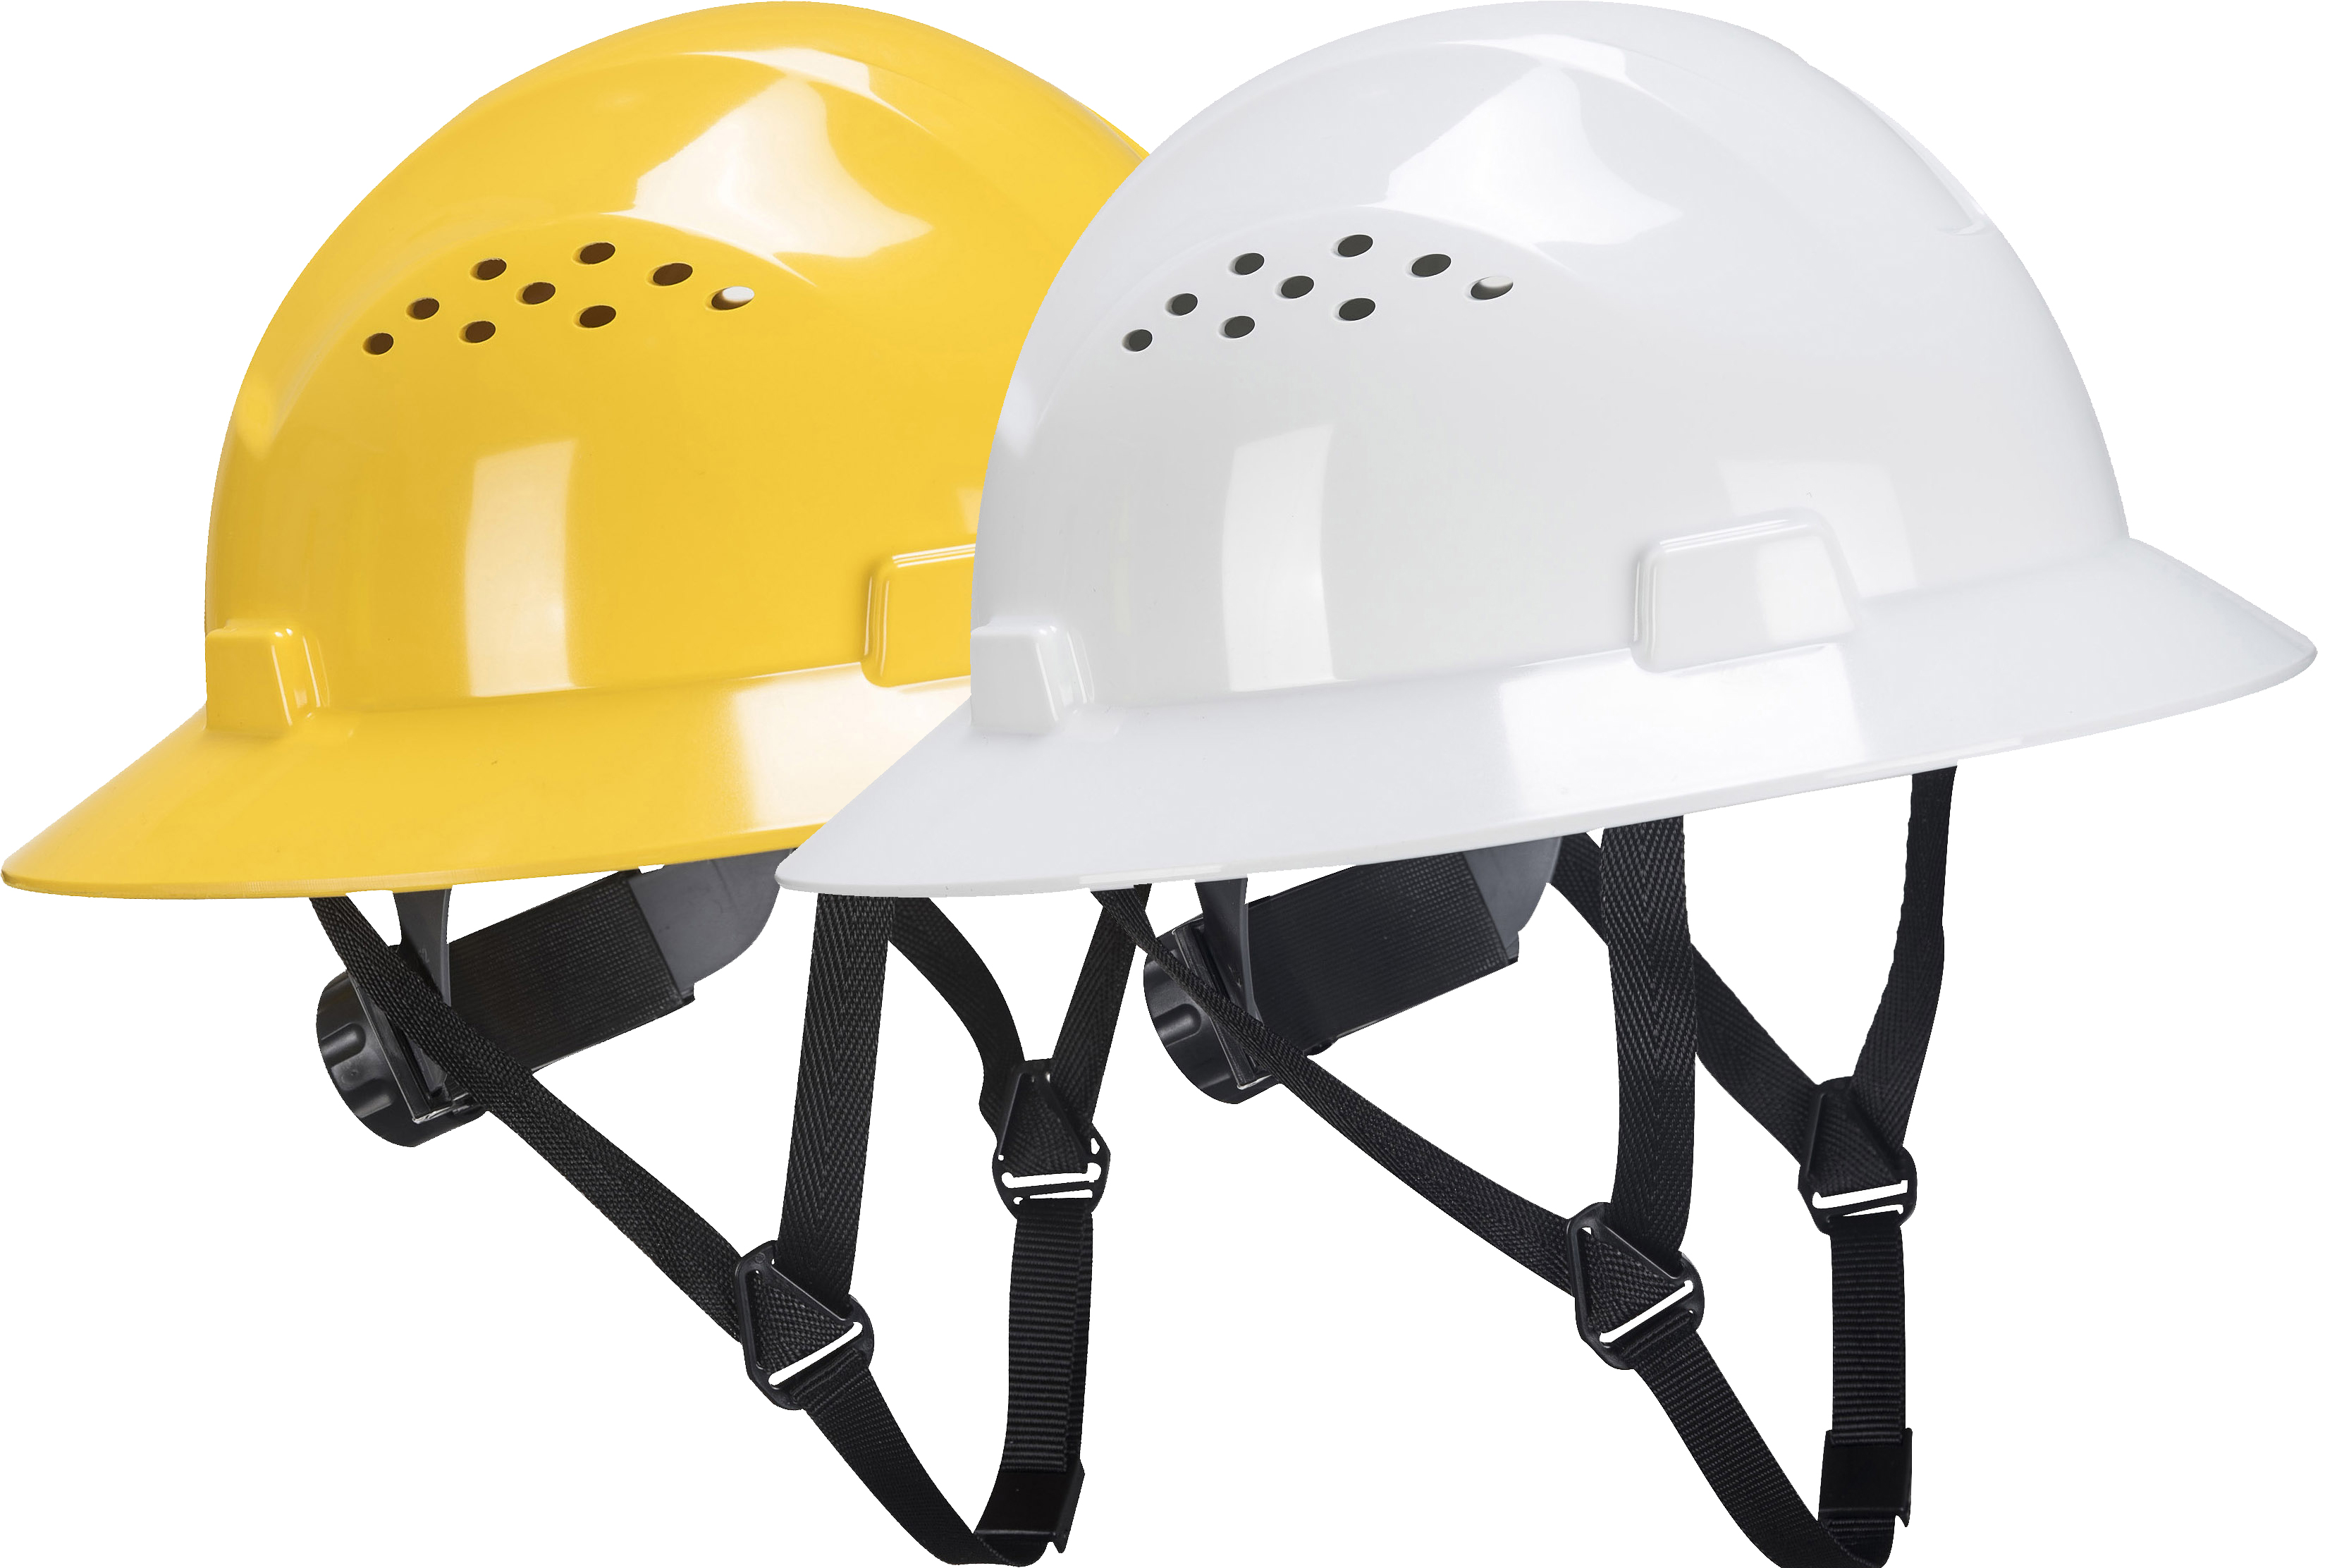 68768aad2 Vented Full Brim Hard Hat, Ratchet Suspension – Portwest PW52, Vented, HDPE  Shell, 4-point Nylon Harness, Soft Sweatband, Adjustable from 20.4